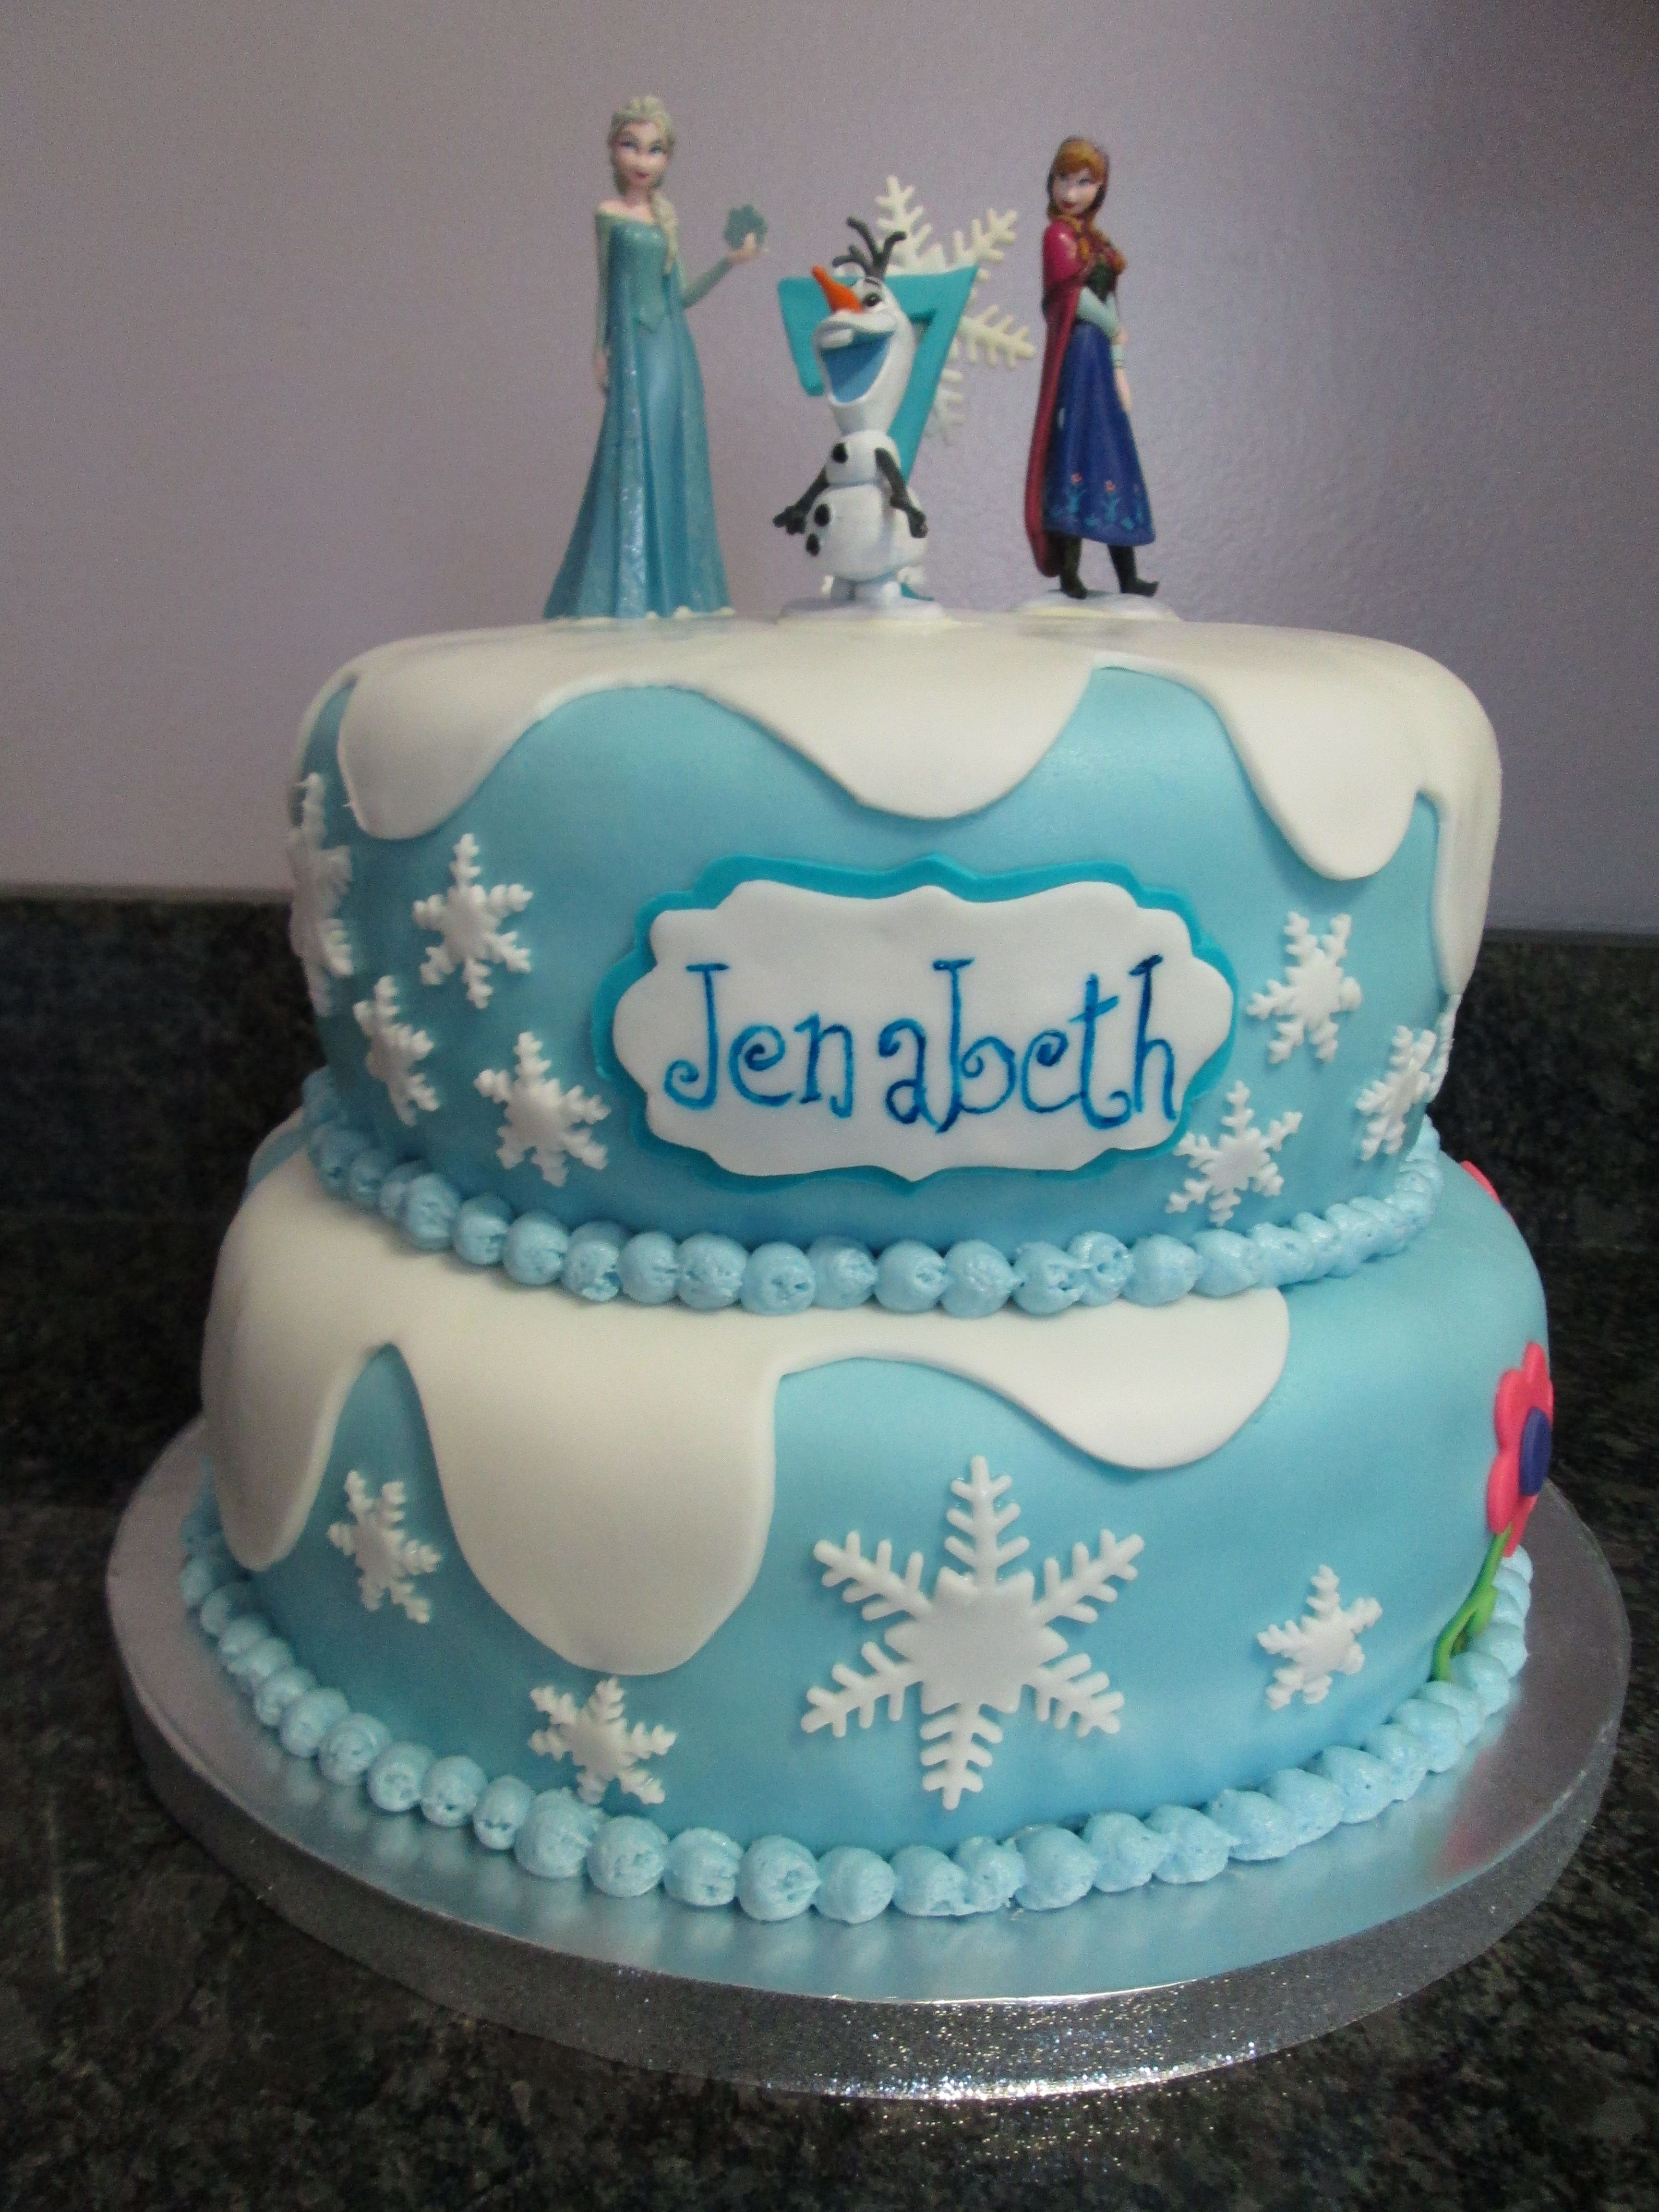 Guess Howe Much I Love You Frozen Birthday Cake Frozen Cake